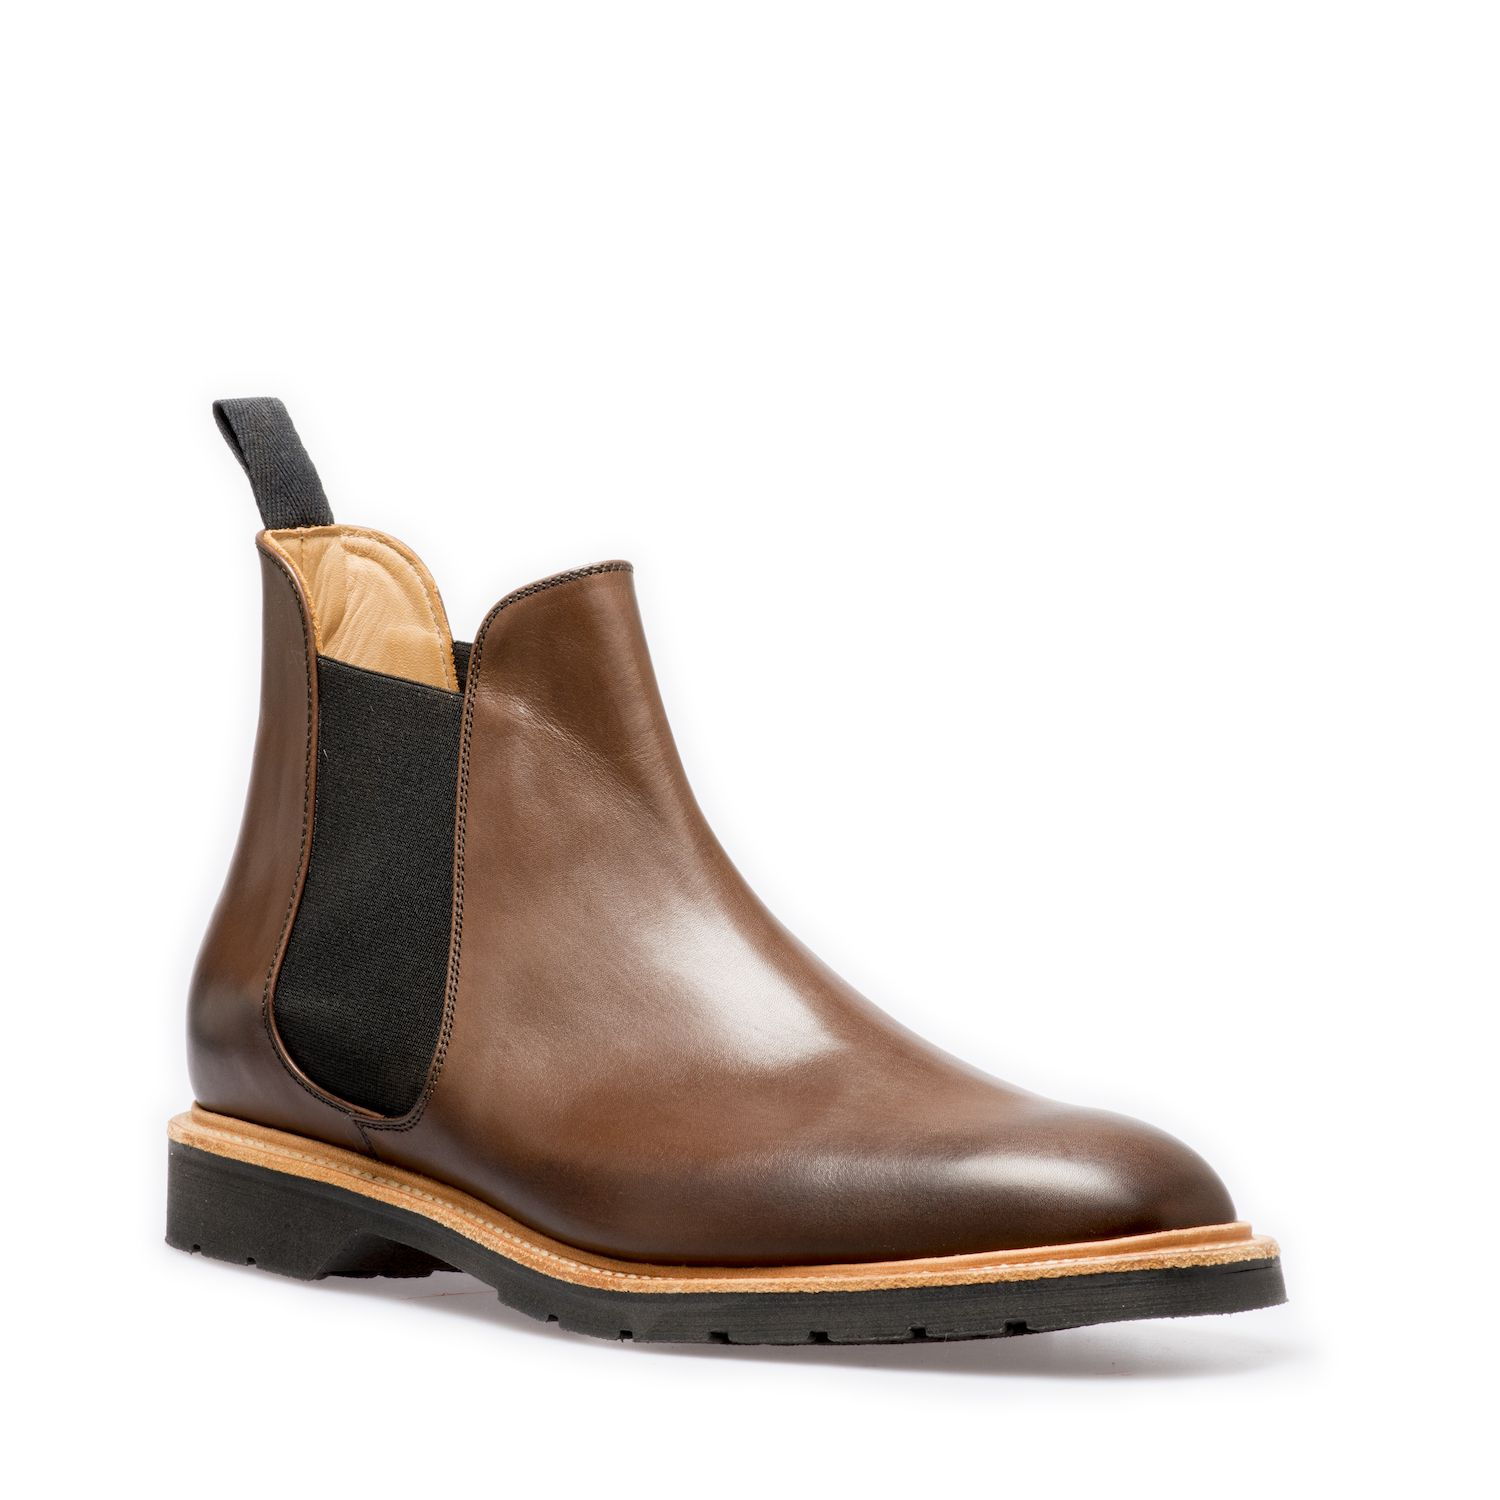 Solovair Chelsea Boot In Ebony